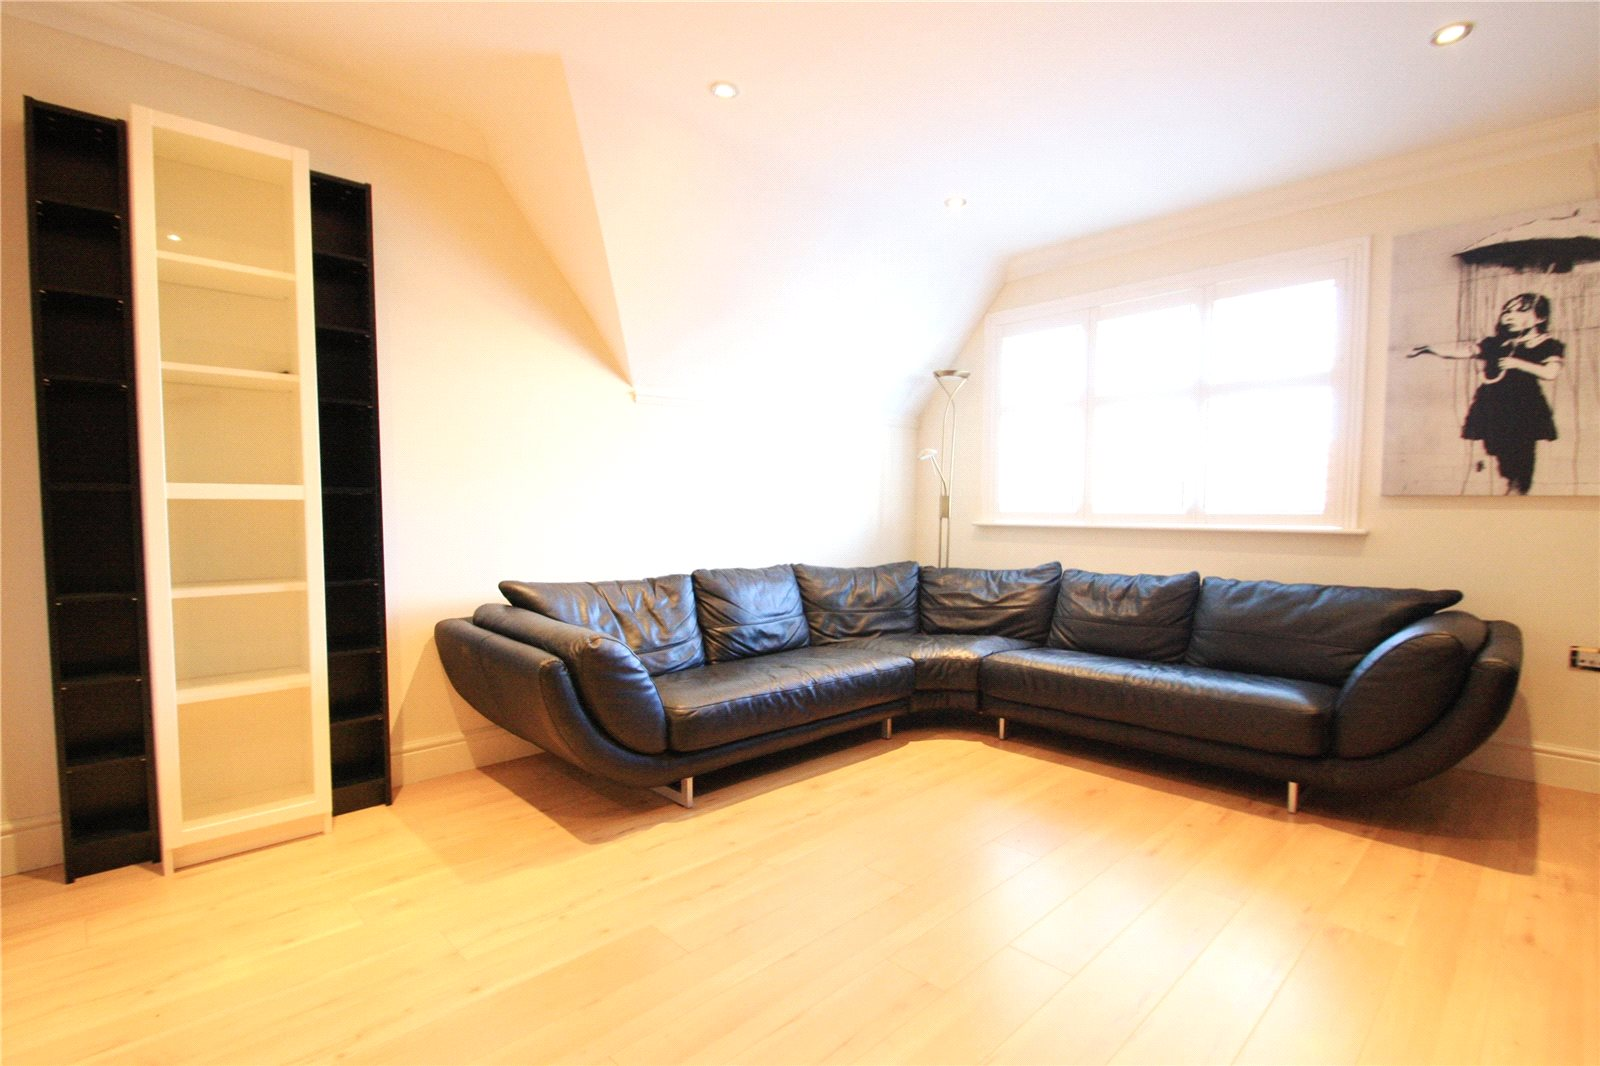 2 bedroom apartment for sale Albany Court Albany Place Egham TW20 9GP